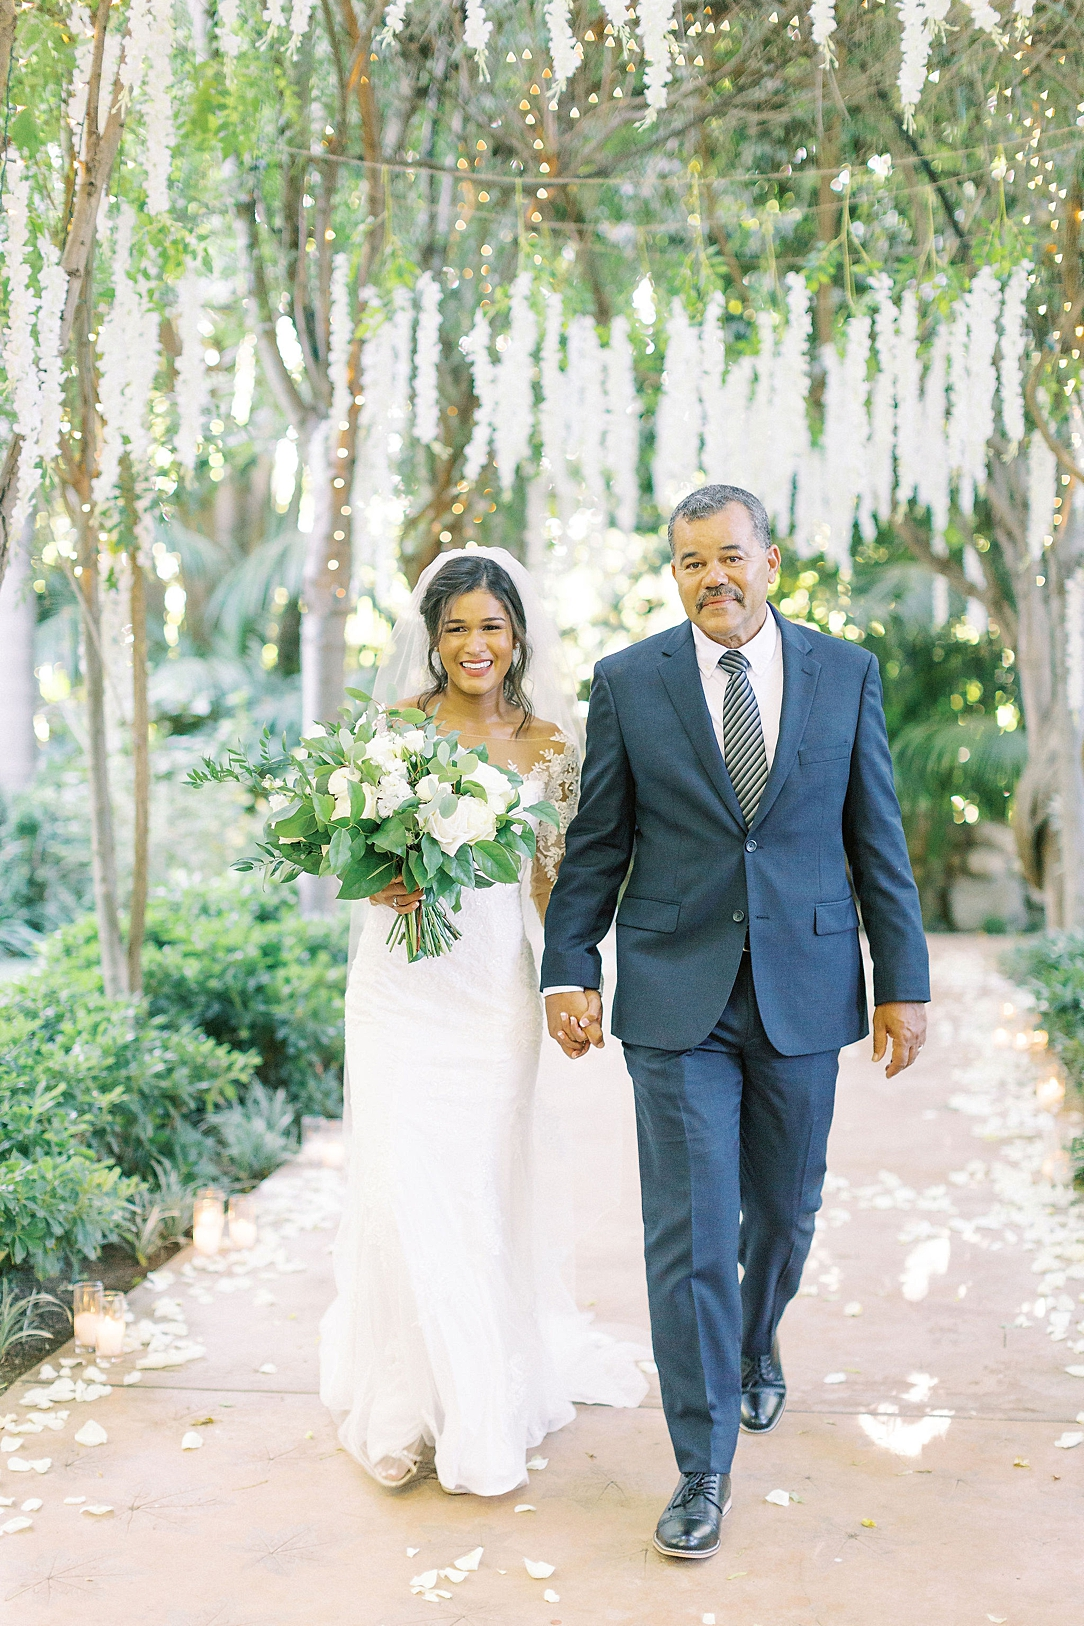 An Organic Floral Inspired Summer Wedding in the gardens of Hartley Botanica Somis by Wedding Photographer Madison Ellis (67)